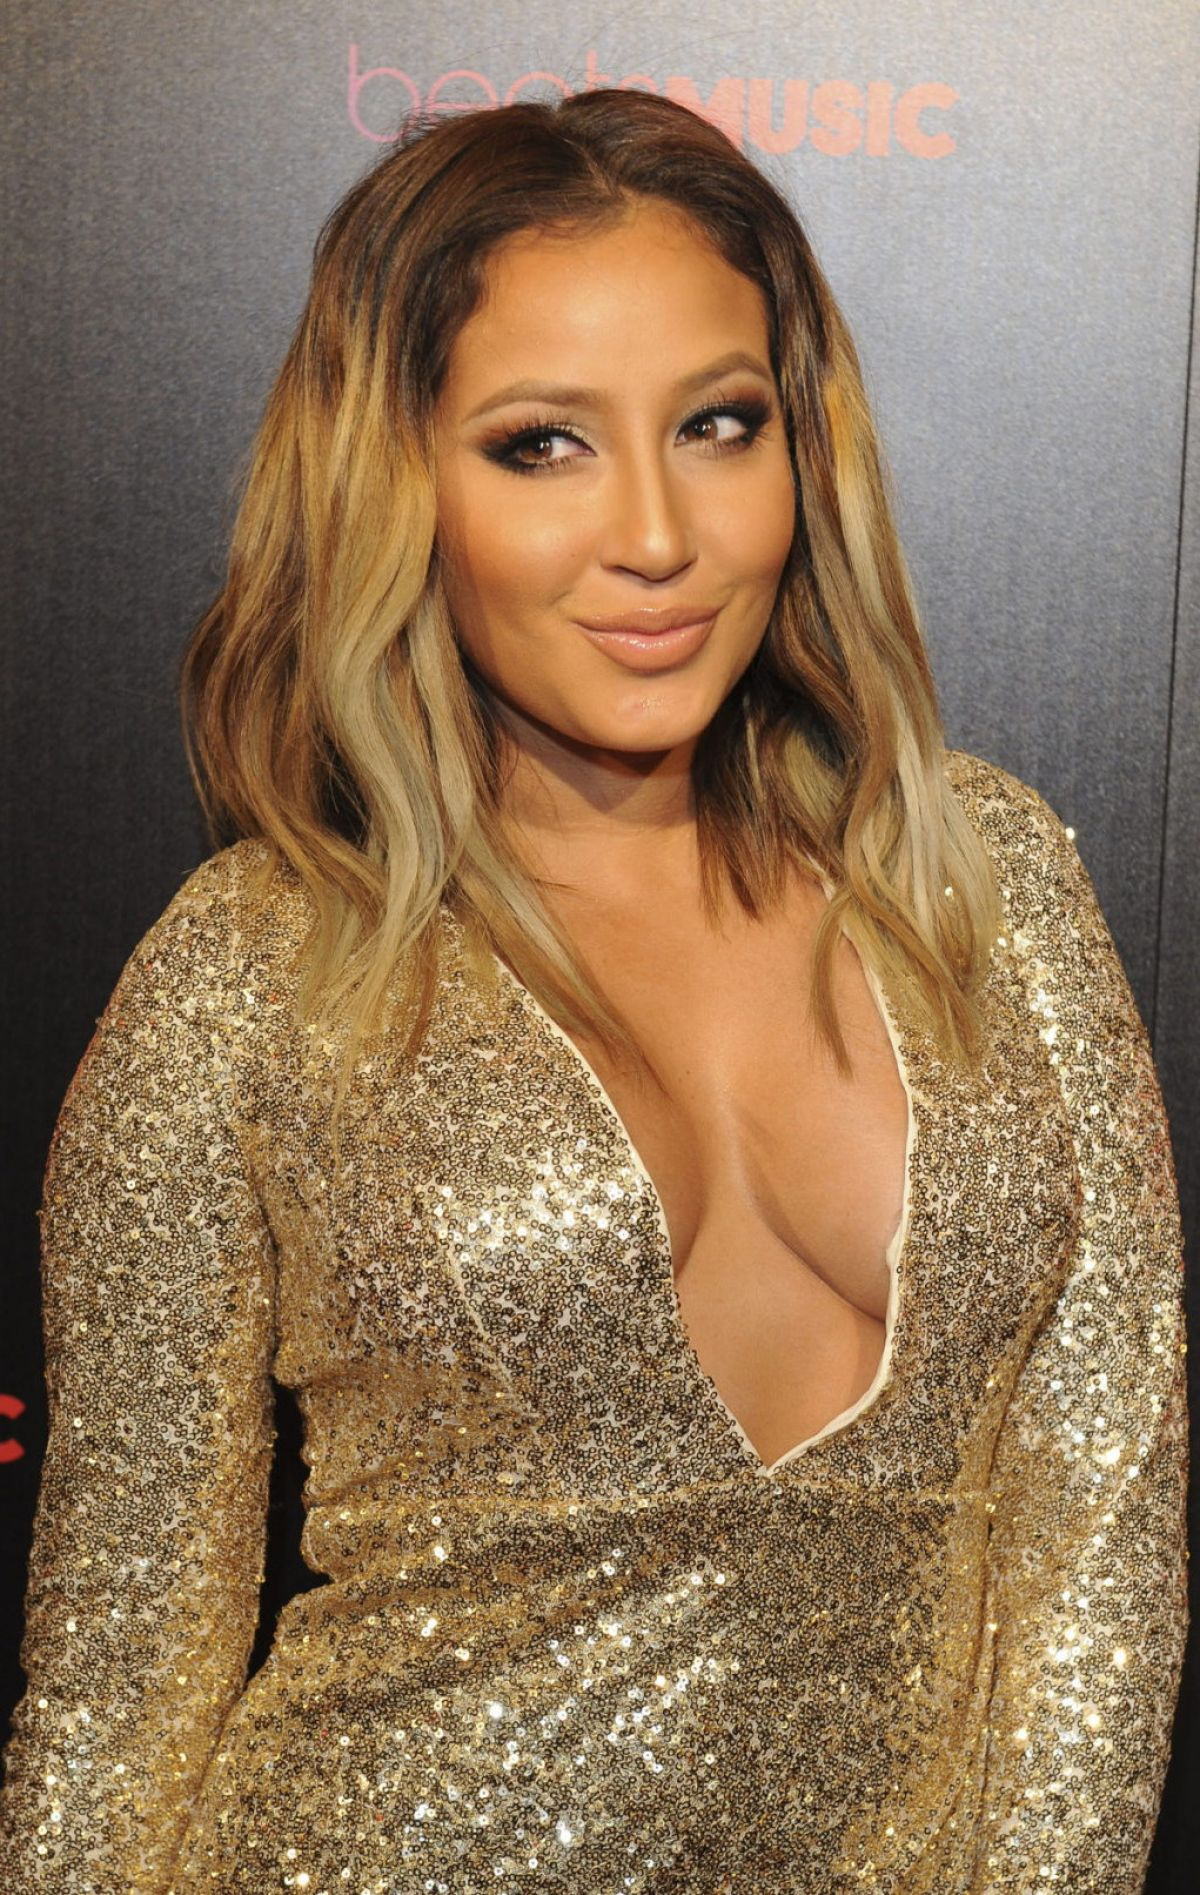 adrienne bailon single